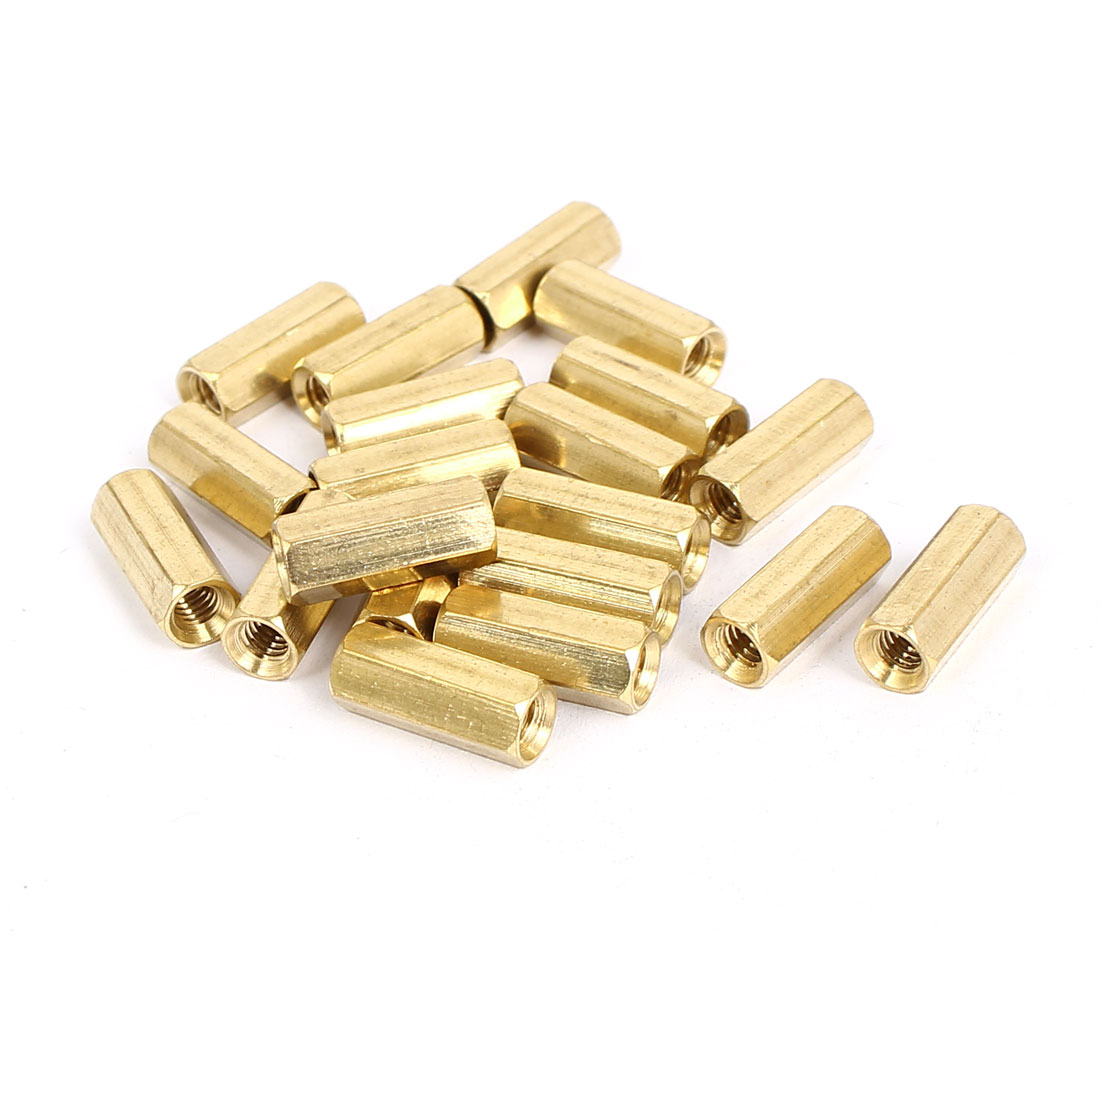 M4x15mm Brass Hex Hexagonal Female Thread PCB Standoff Spacer 20pcs